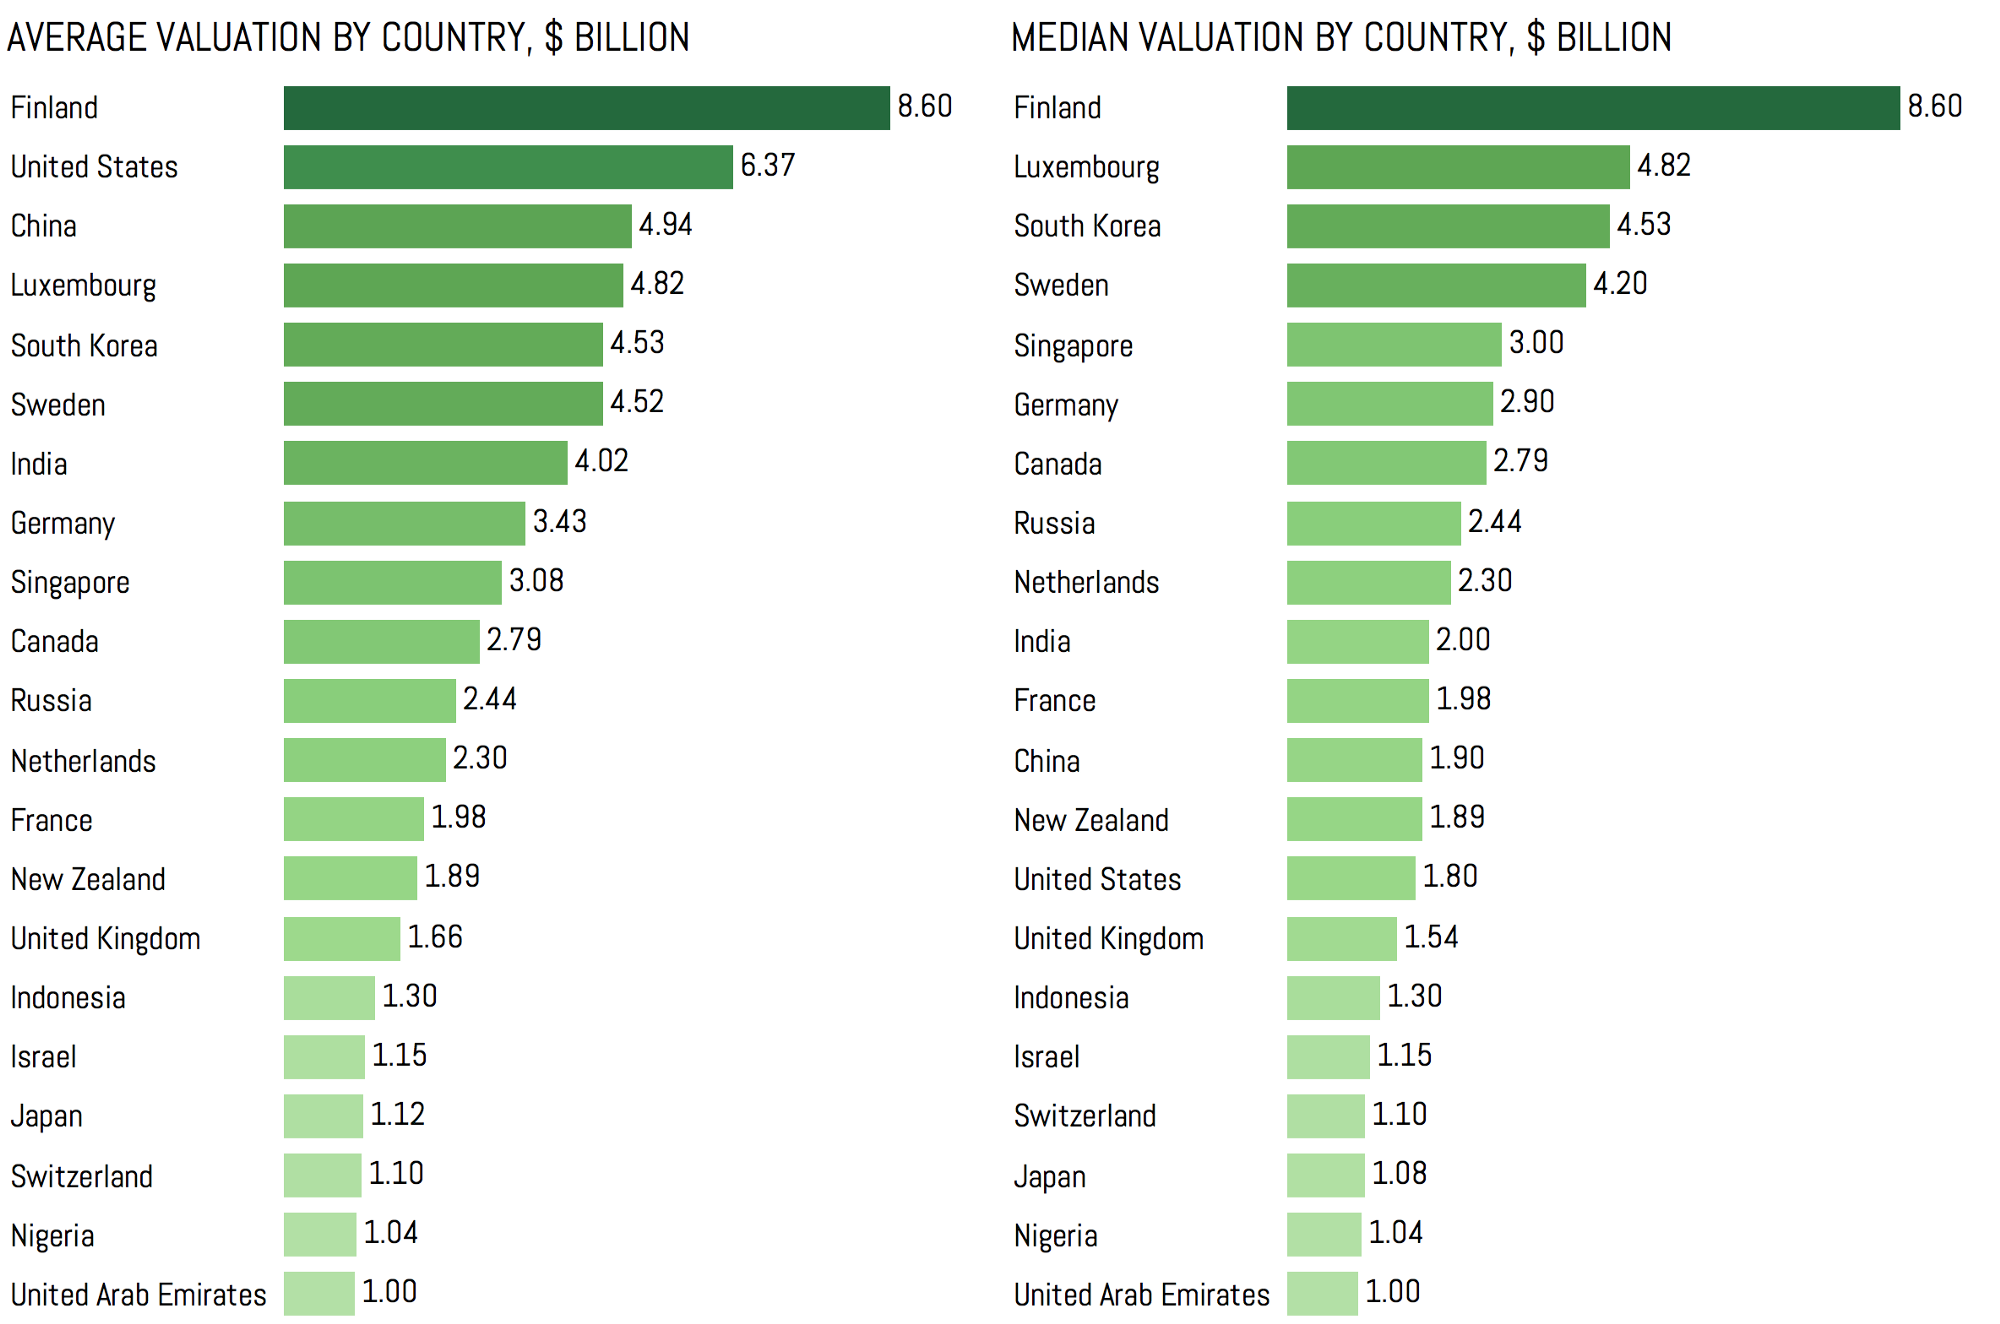 Let s look at it from an investment prospective if a company had - Now Let S Take A Look At The Average And Median Valuations By Country